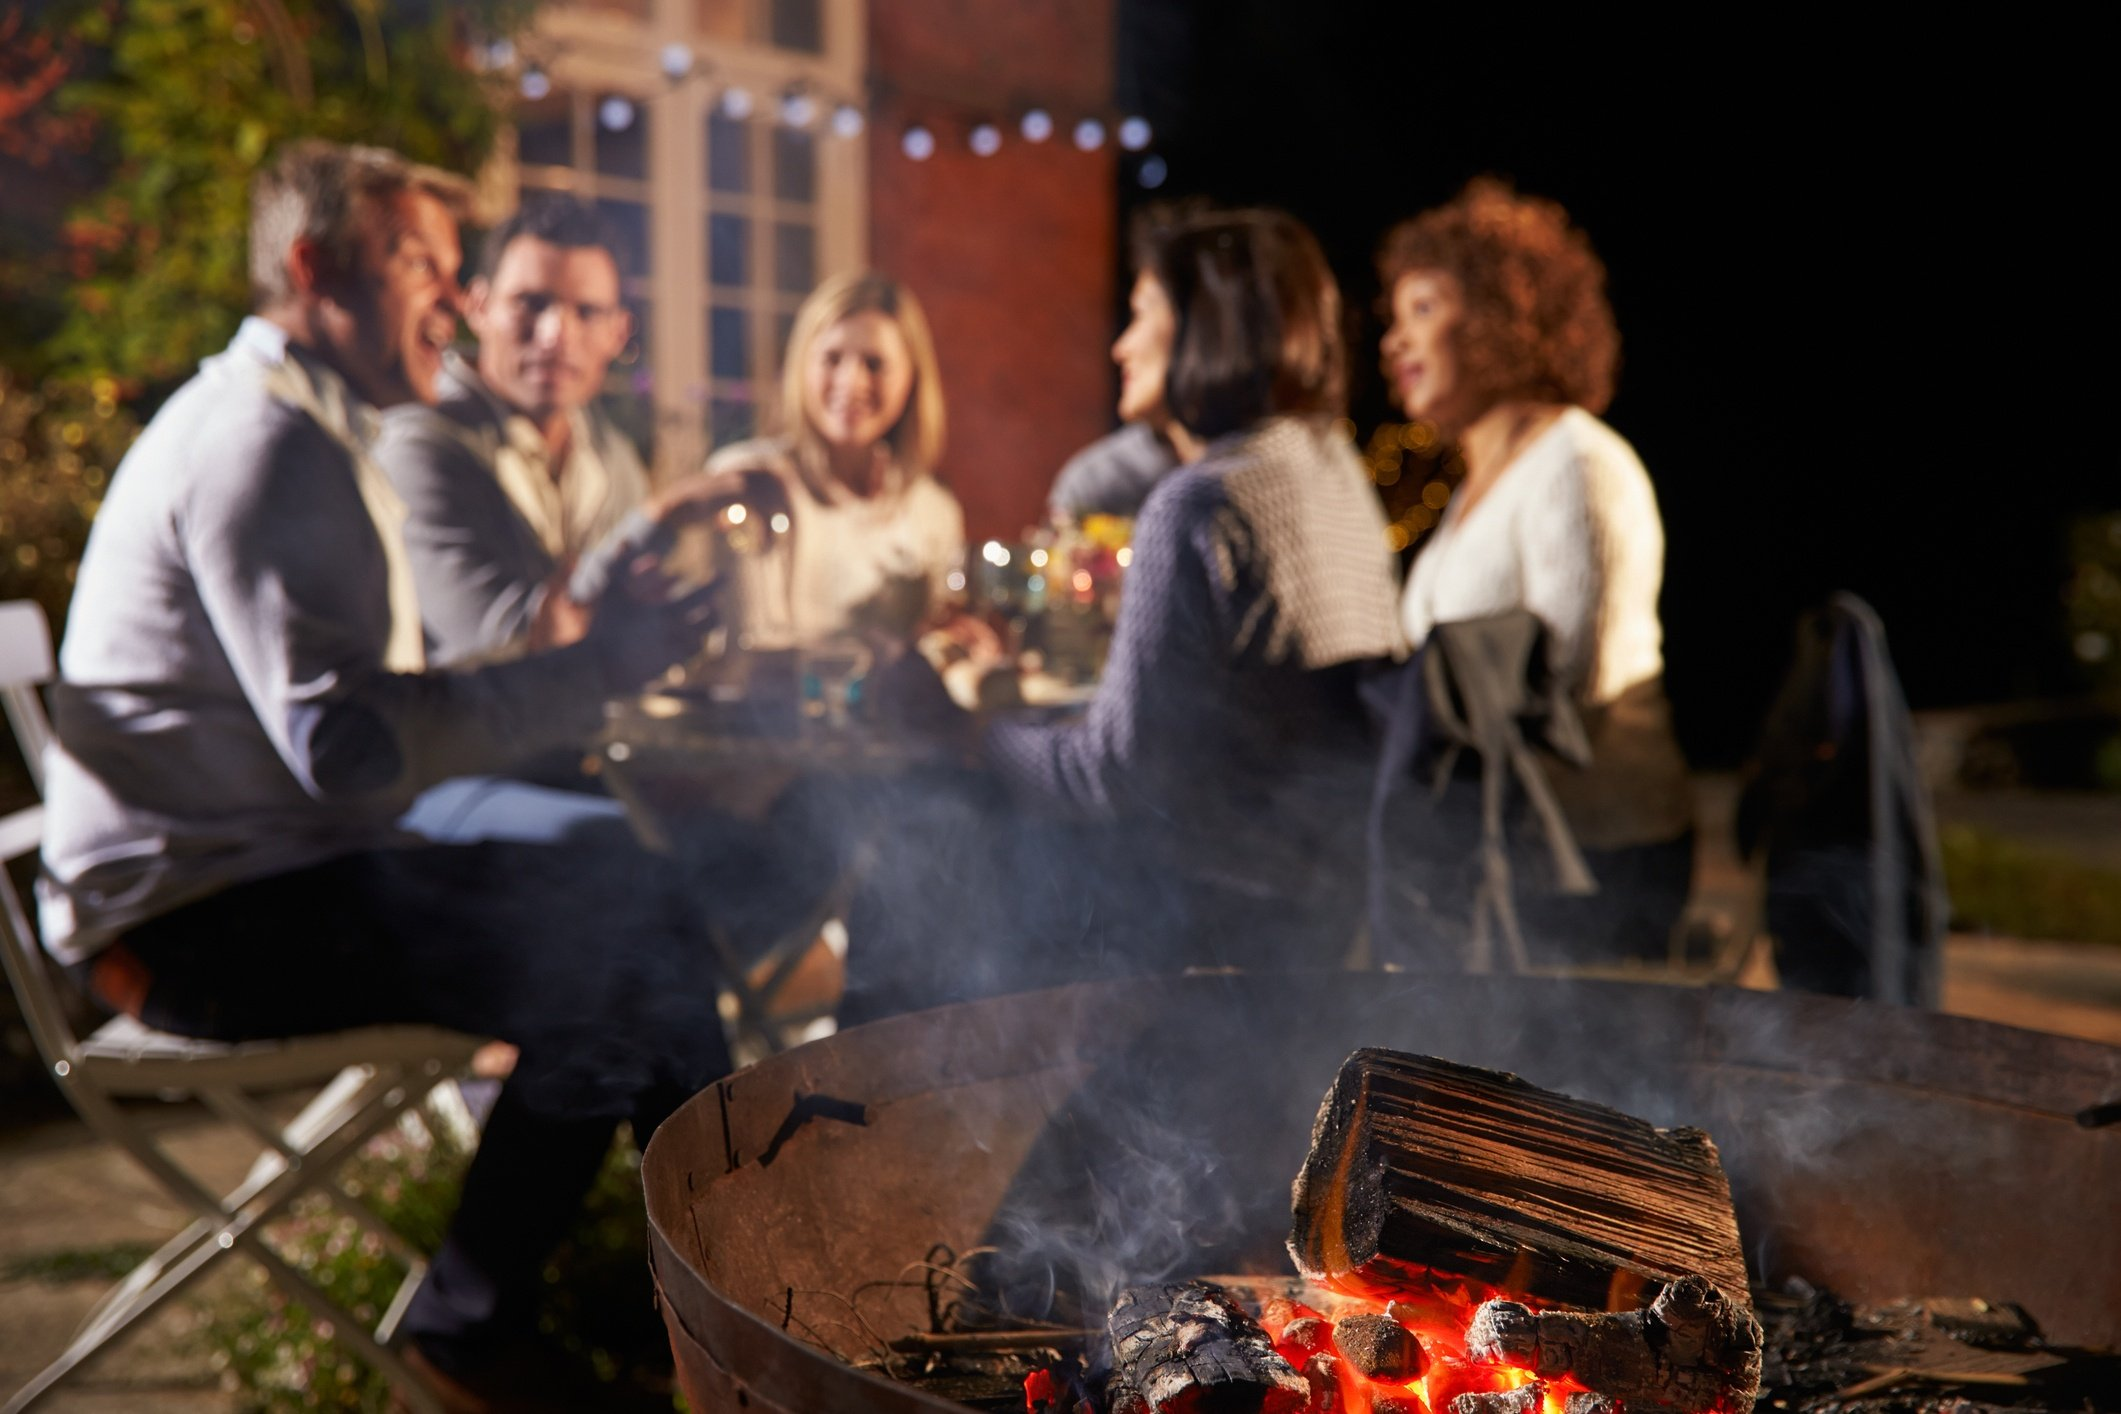 Create an Outdoor Living Room + Cook Portable Warehouses